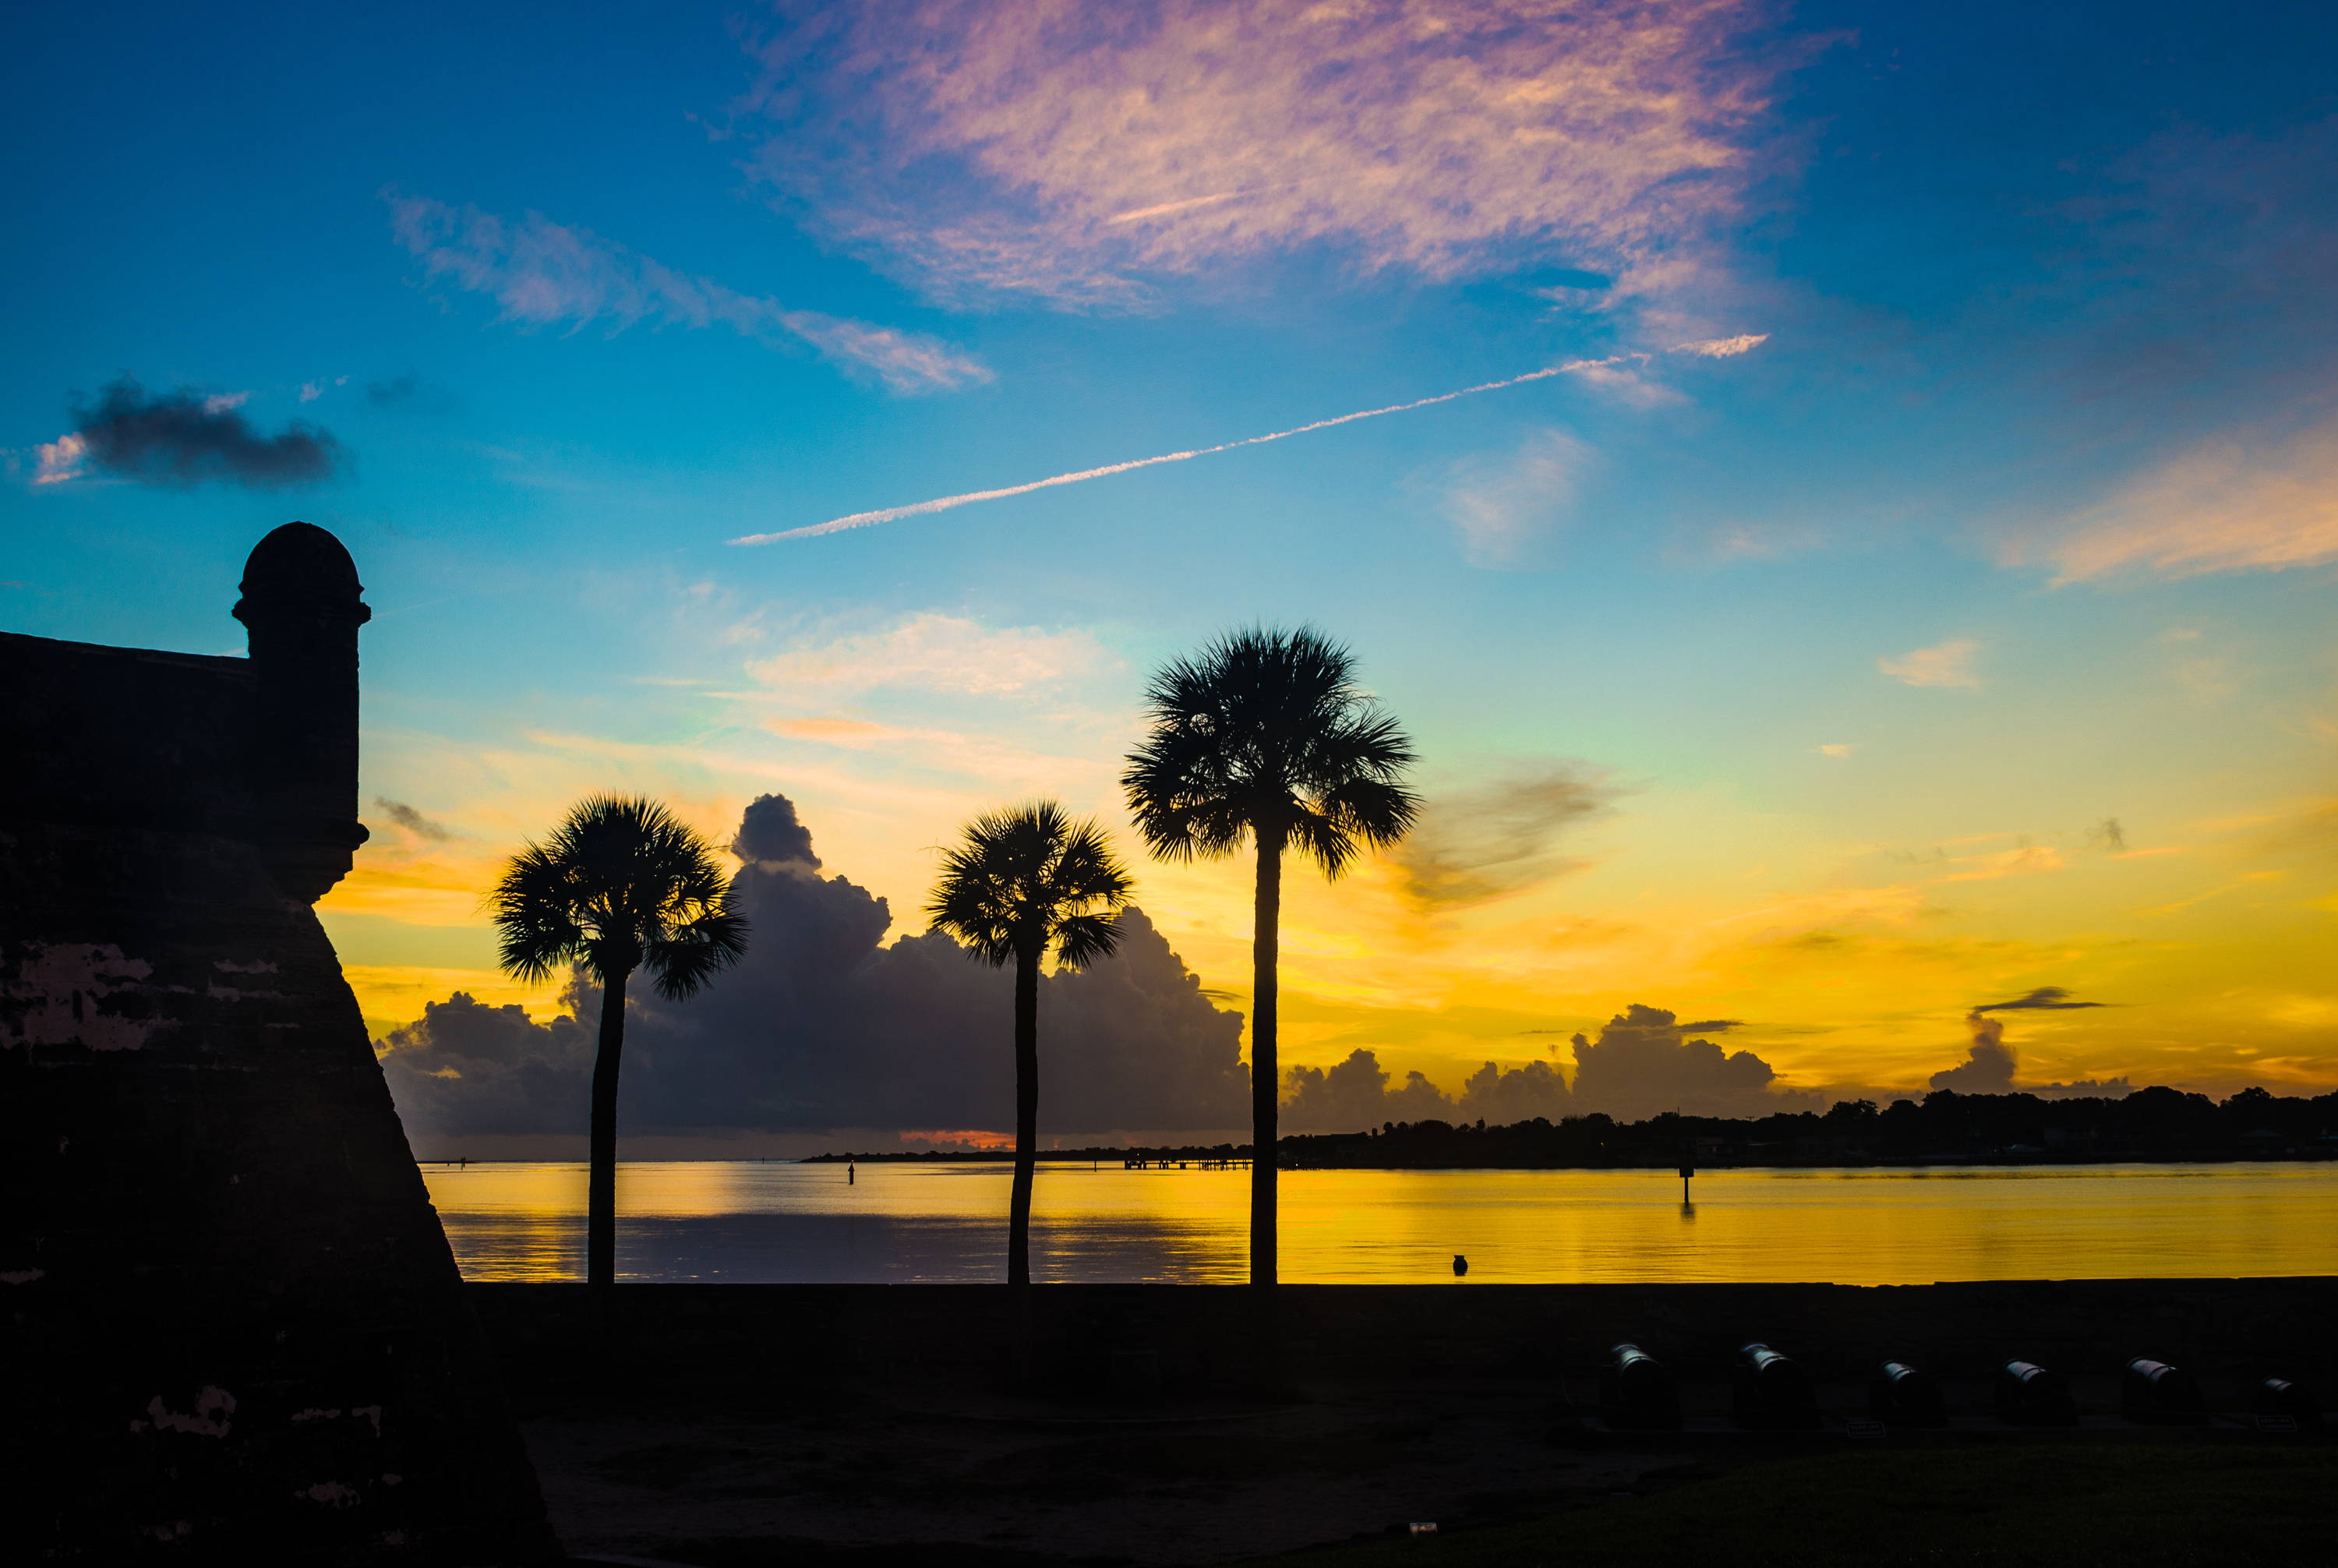 National Parks in Florida. Sun sets over water with yellow and blue hues, clouds in the background, and palm trees in the foreground.